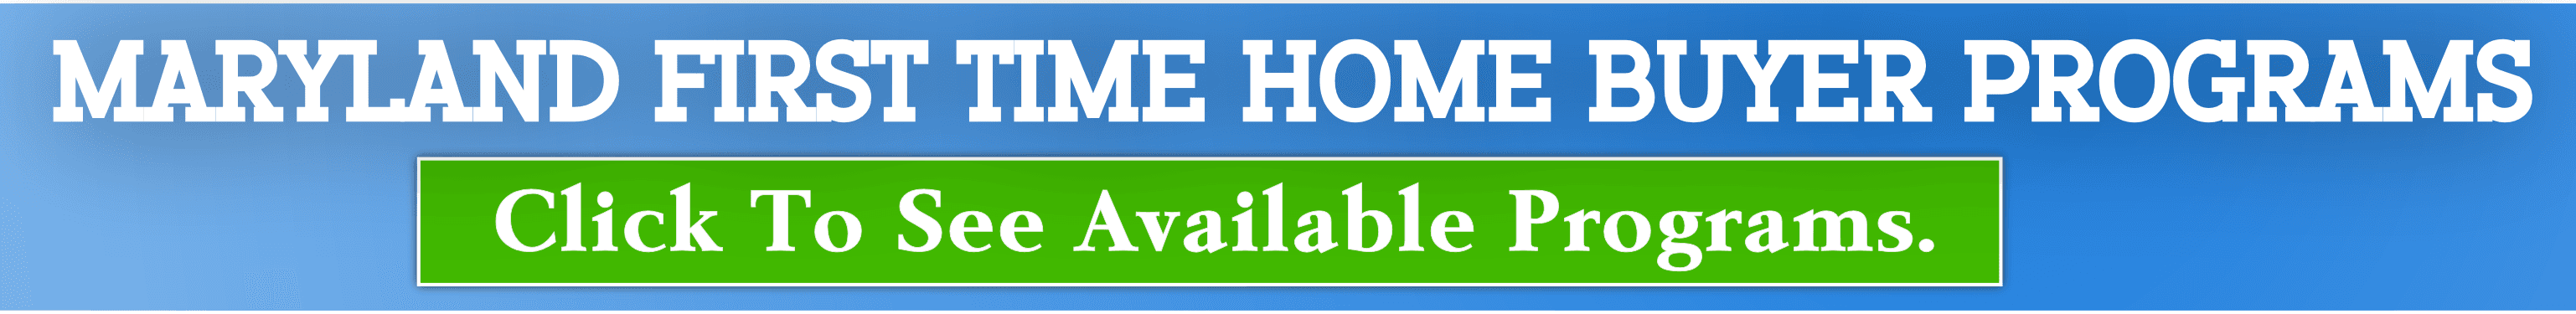 First Time Home Buyer Programs - Maryland